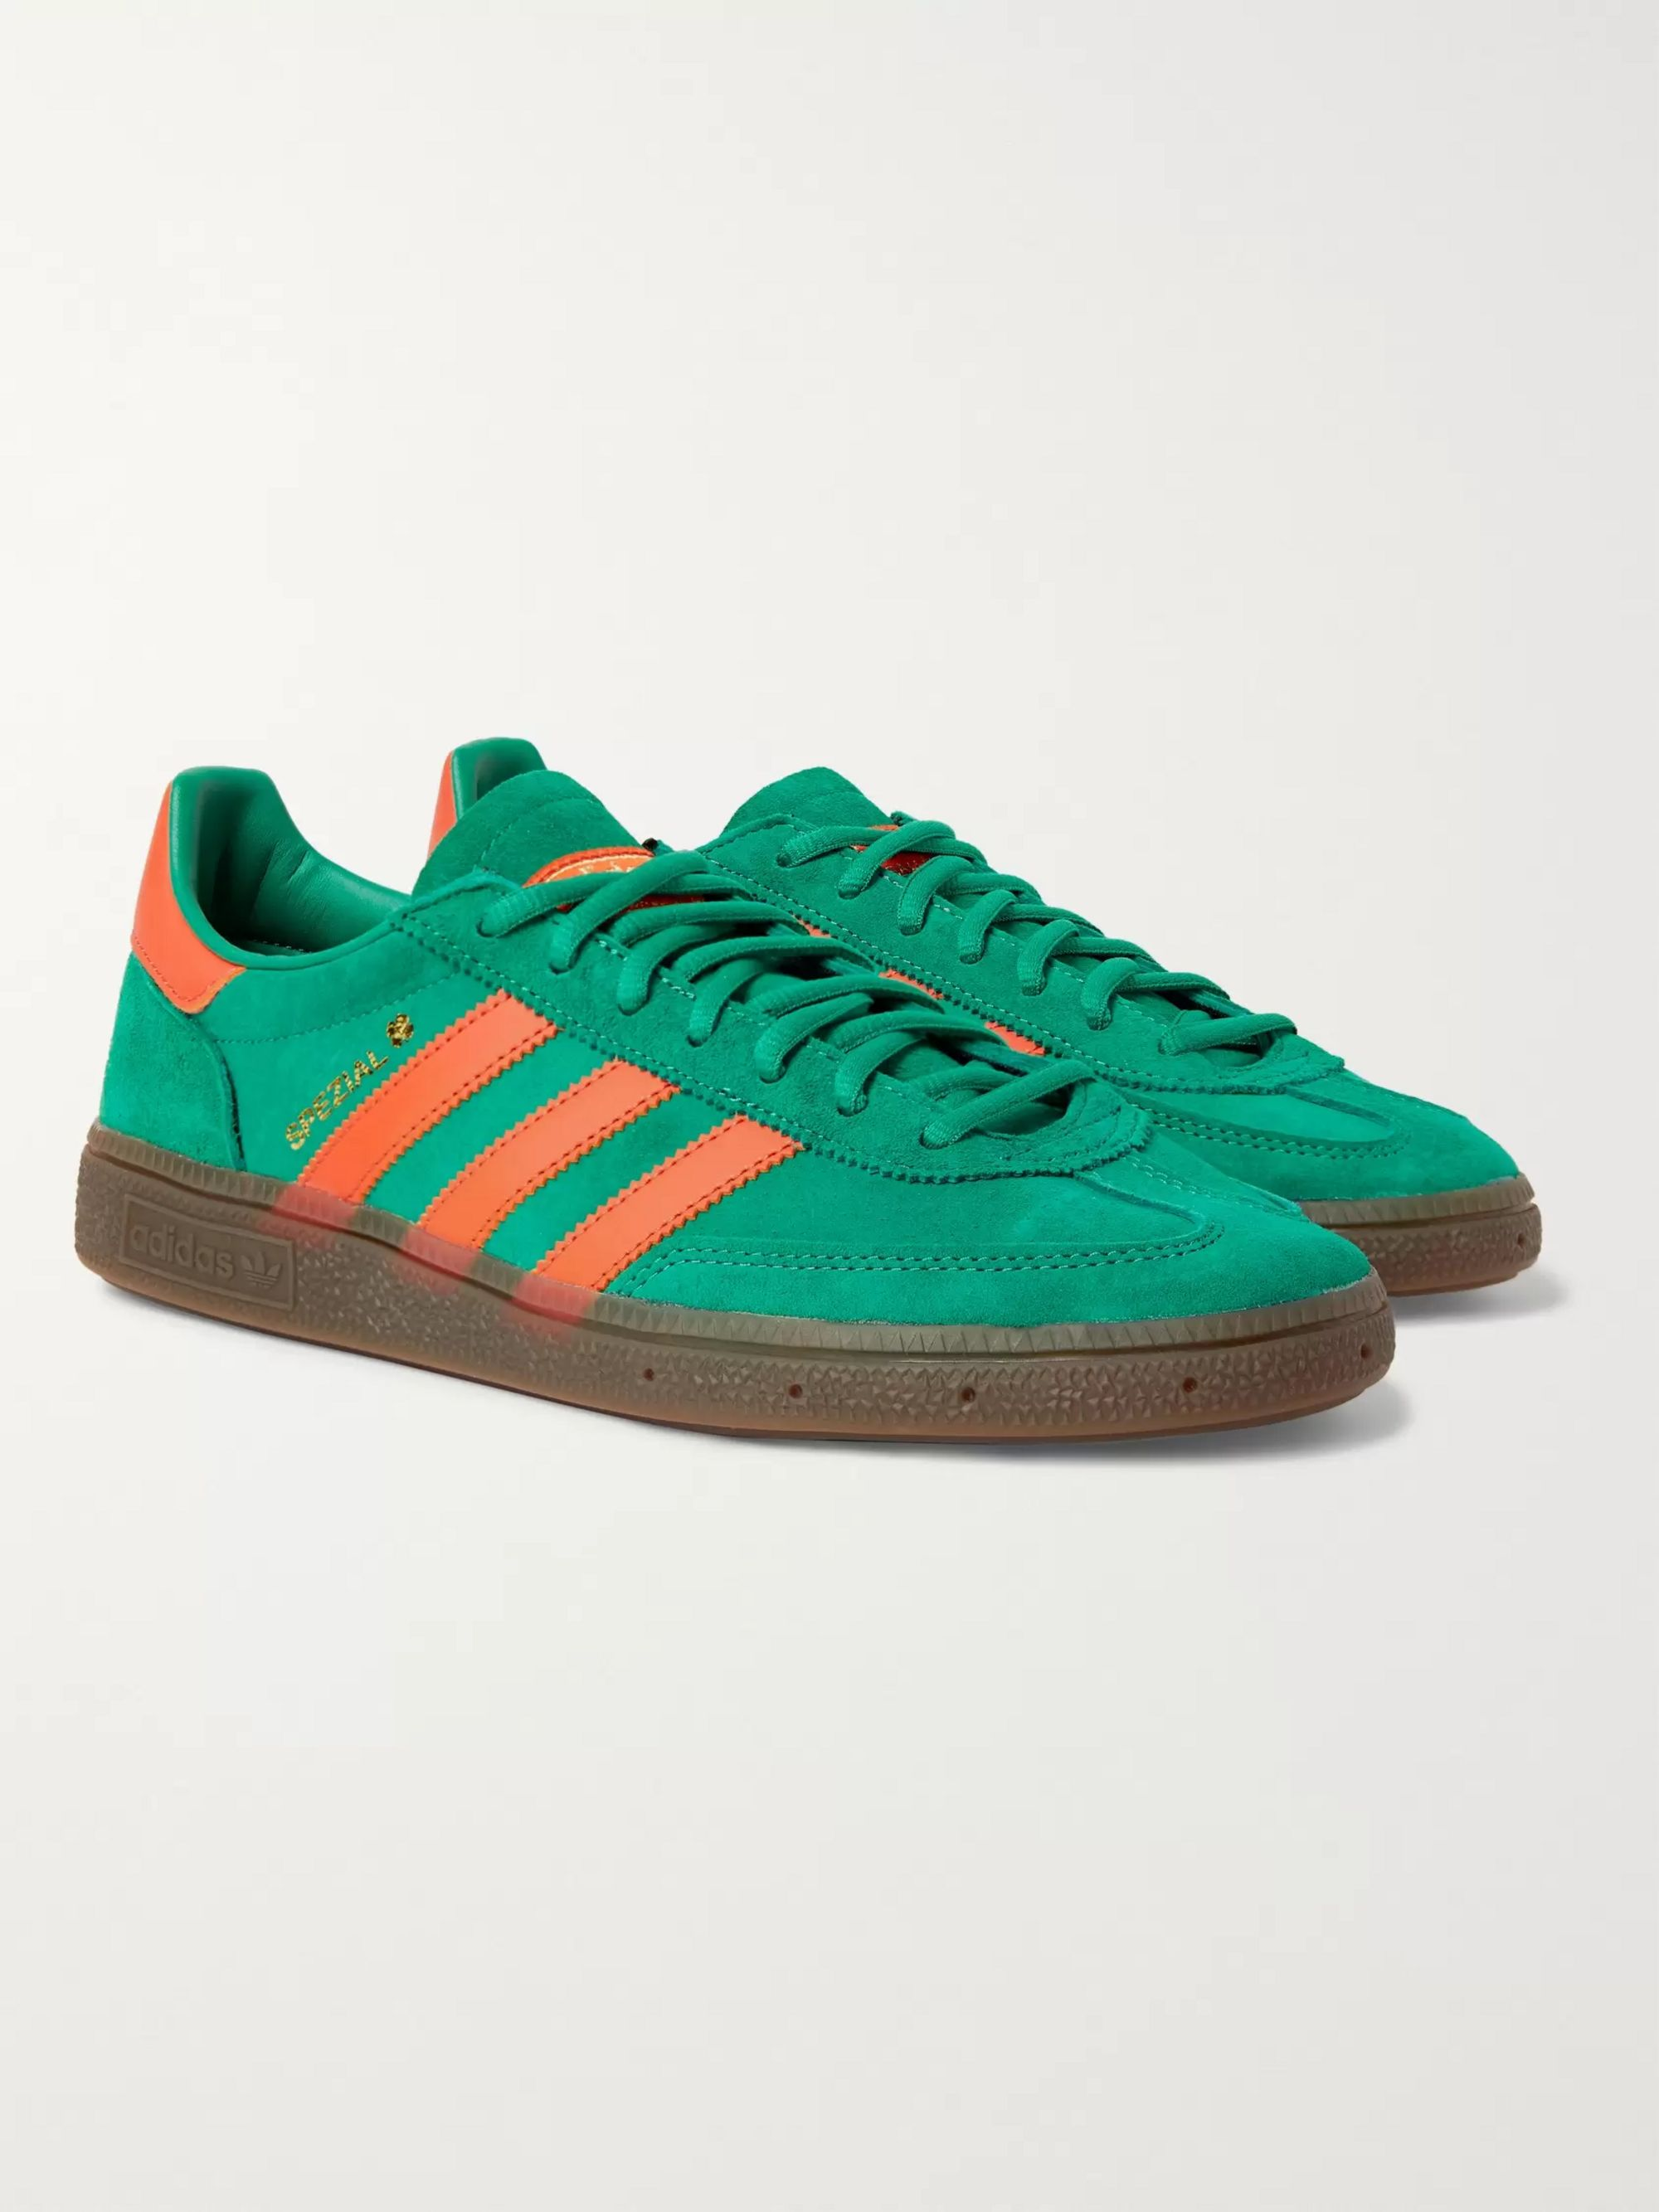 adidas Originals Handball Spezial Leather-Trimmed Suede Sneakers